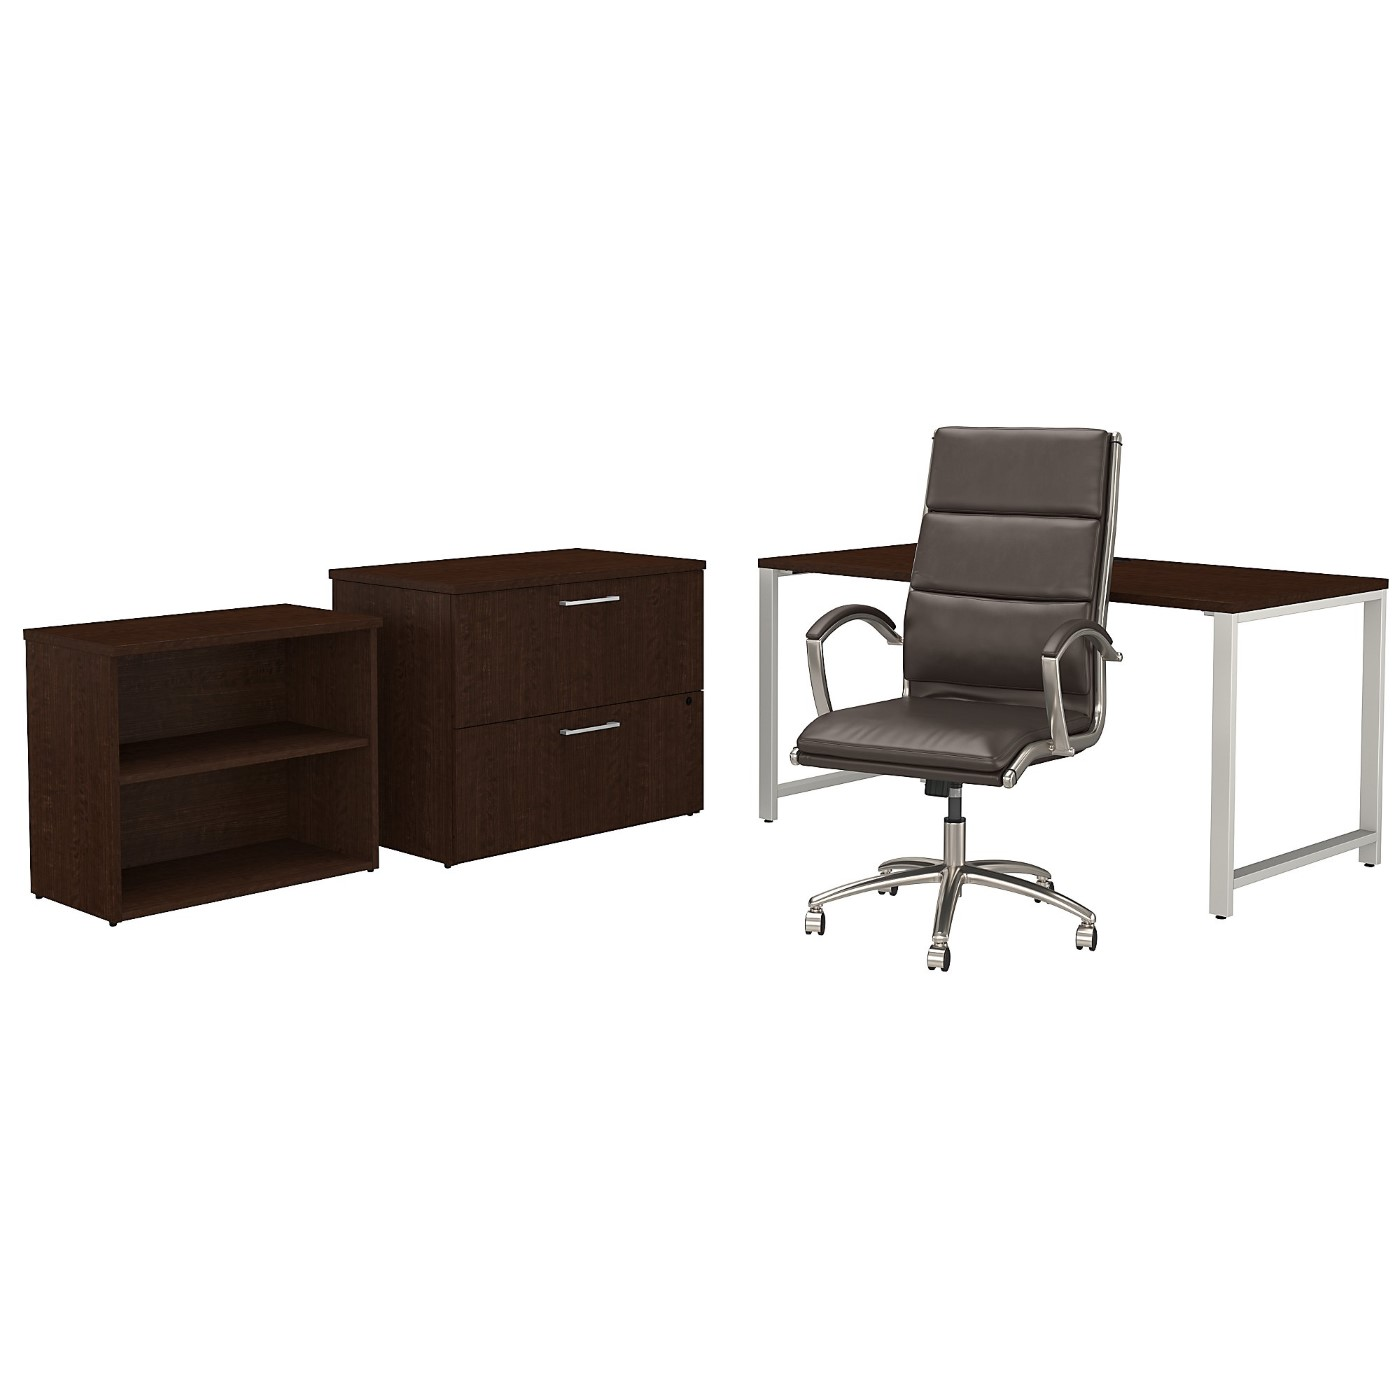 BUSH BUSINESS FURNITURE 400 SERIES 60W X 30D TABLE DESK AND CHAIR SET WITH STORAGE. FREE SHIPPING